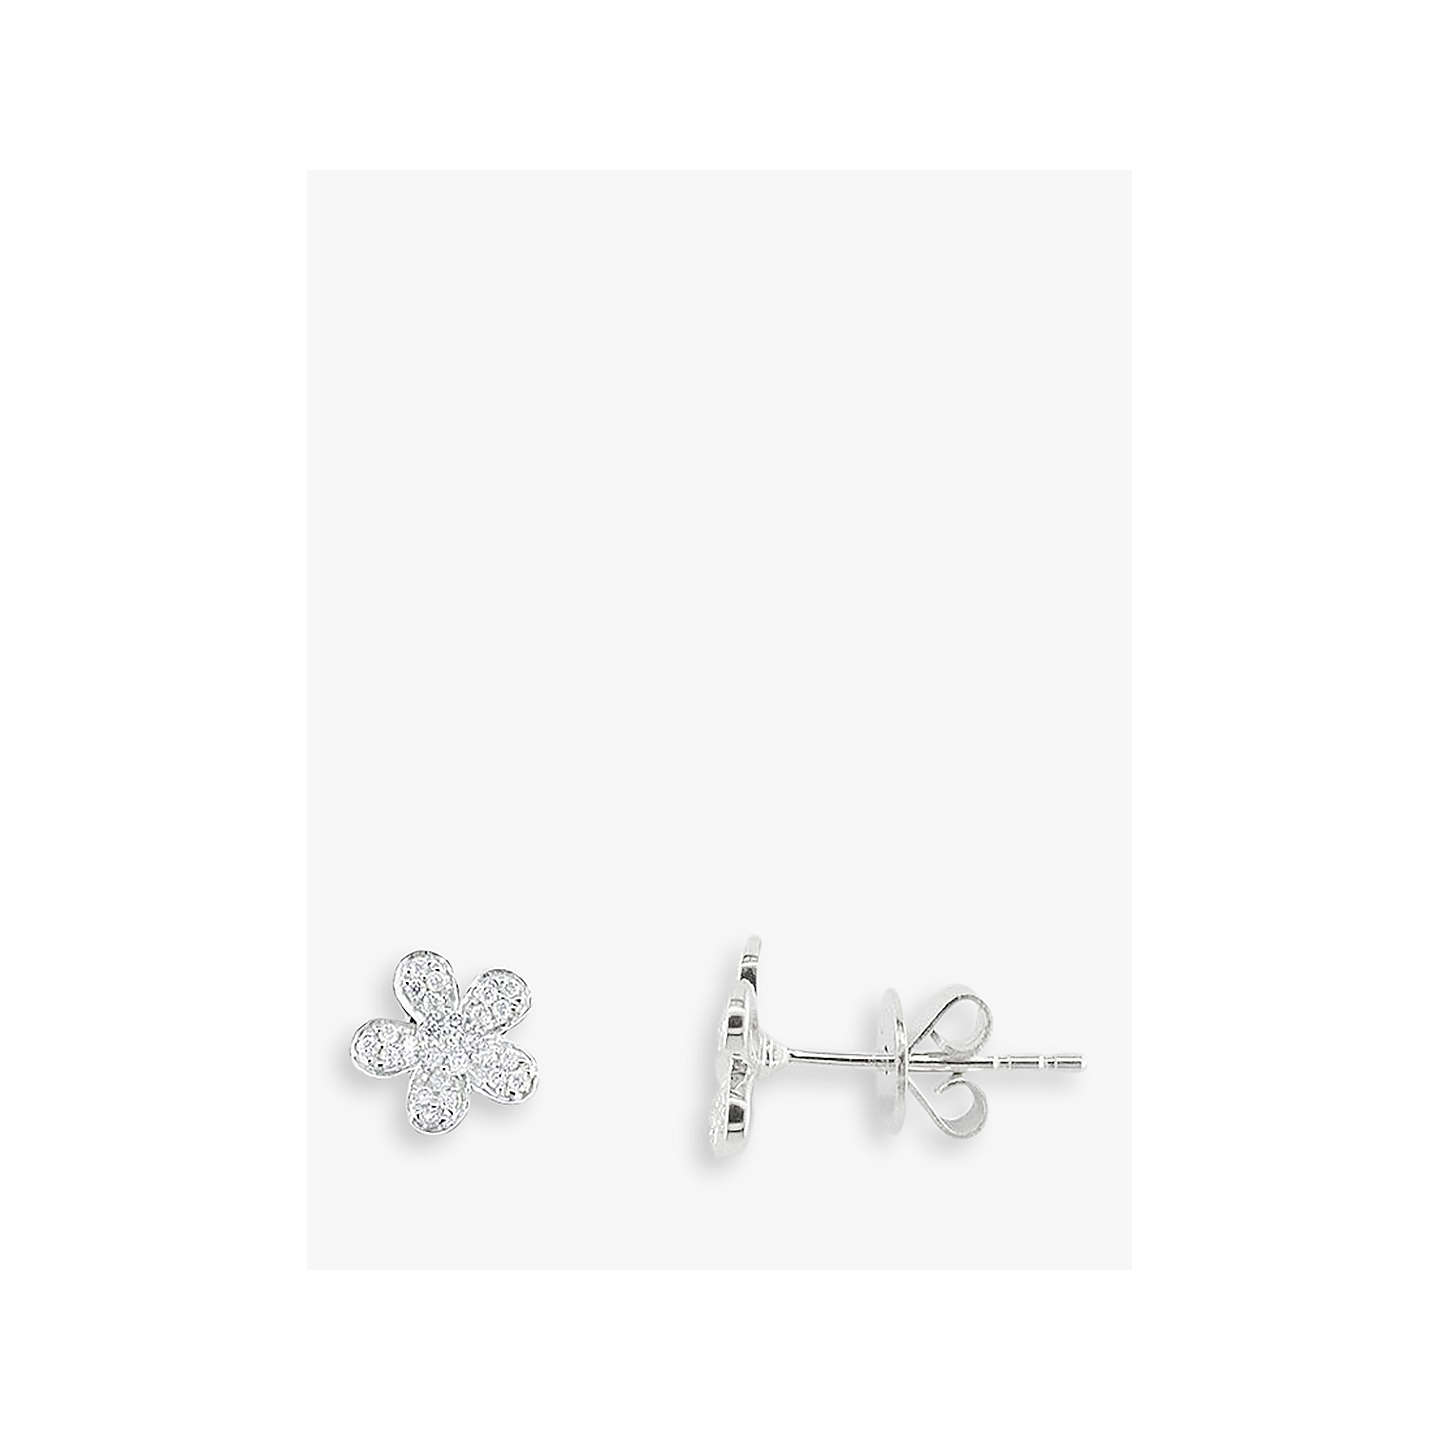 at silver online pelipa earrings john lewis stud ted pdp johnlewis rsp flower big buyted com main baker